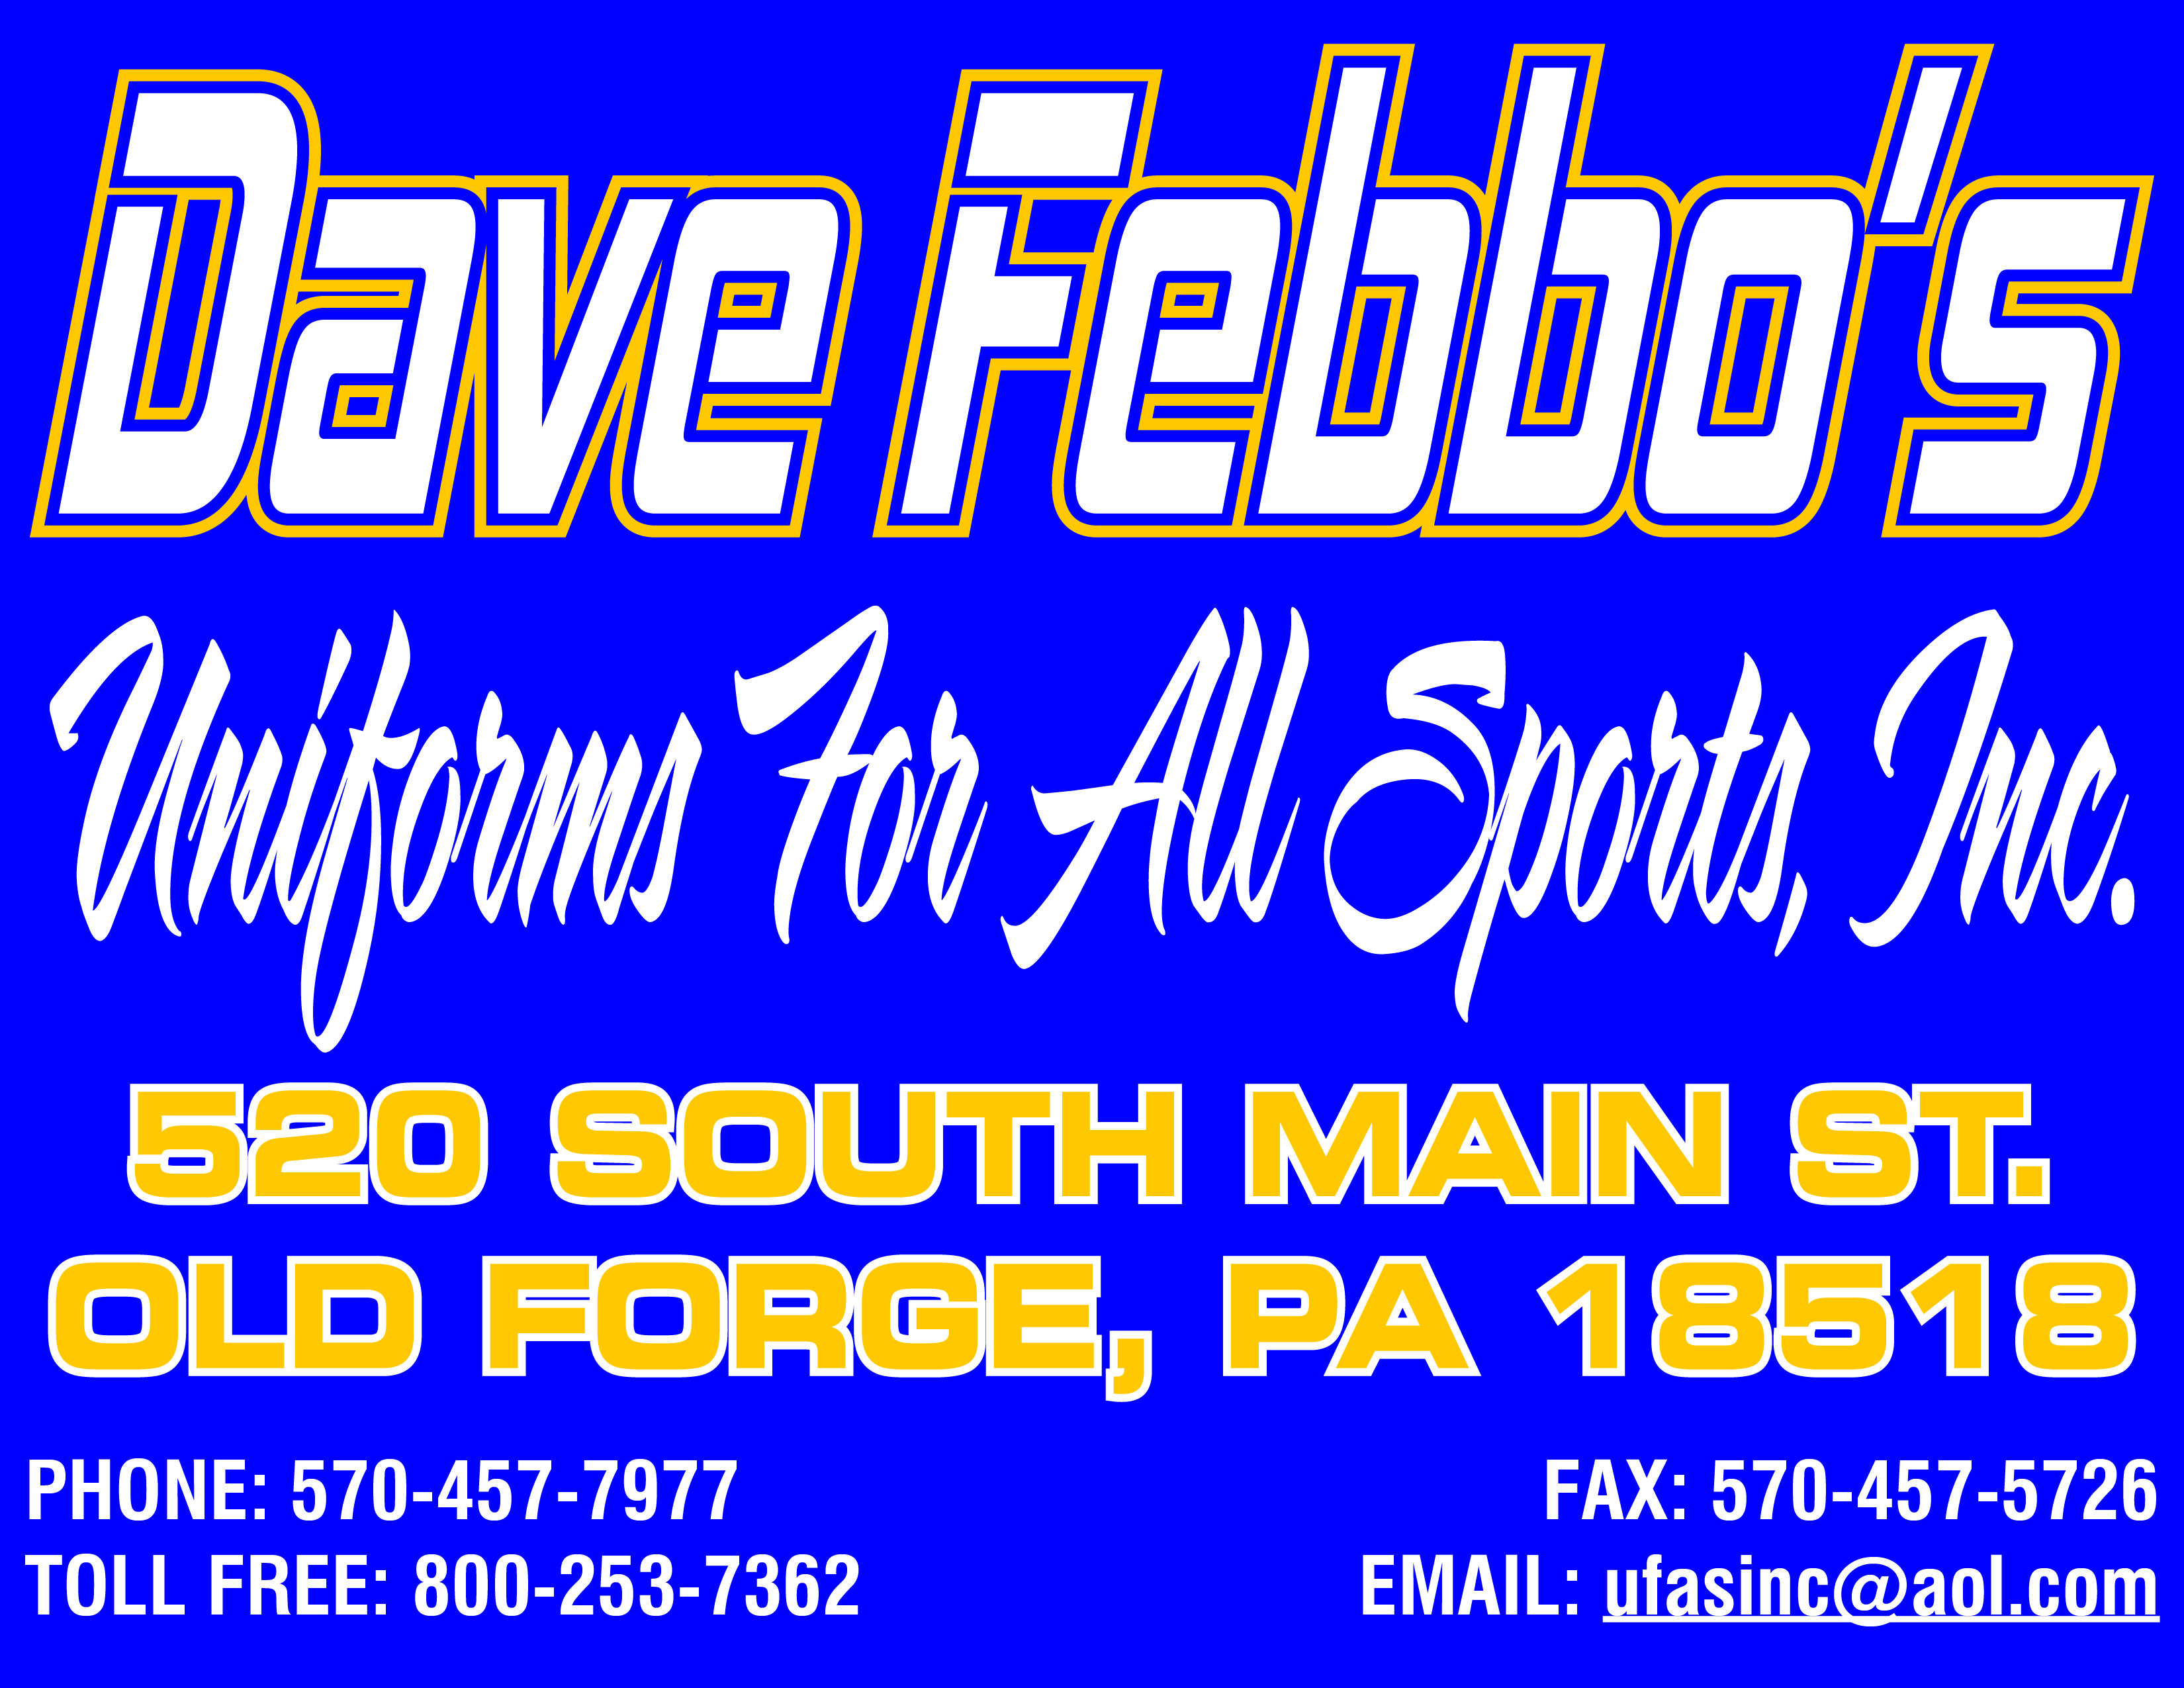 Dave Febbo's Sporting Goods - Call us at 570 457 7977